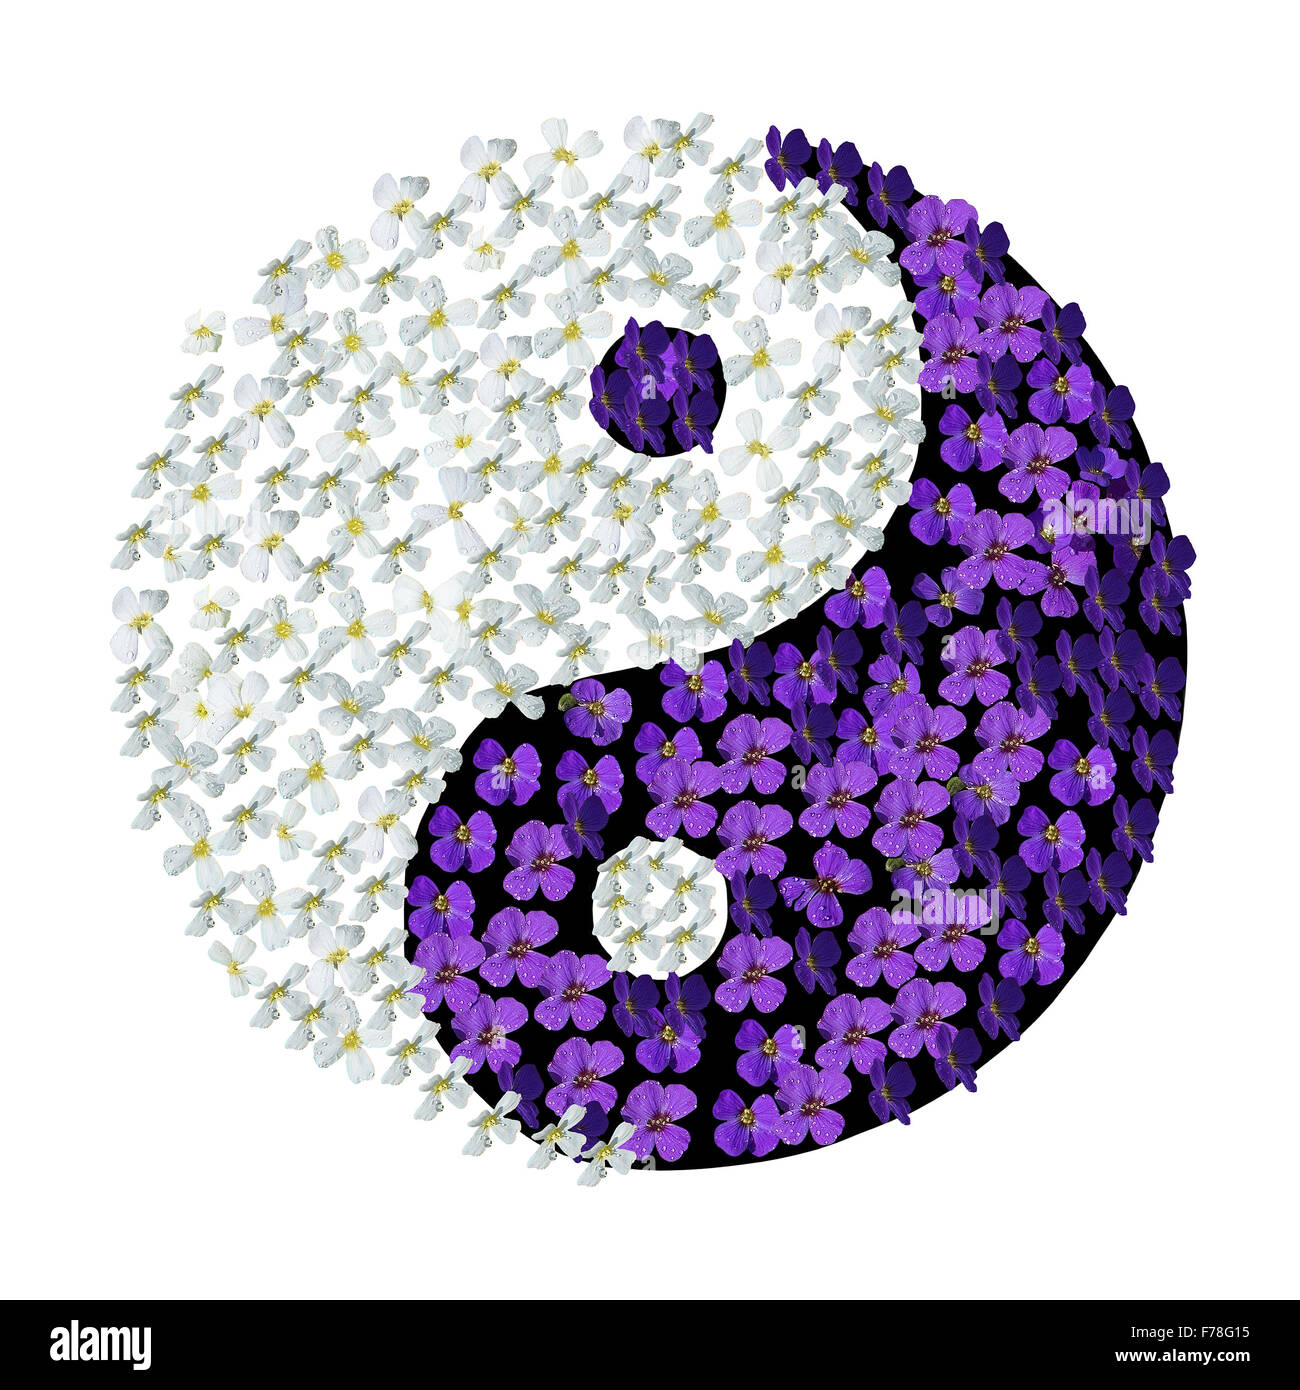 Floral yin yang yin yang symbol with white and purple flowers with yin yang symbol with white and purple flowers with droplets isolated on white mightylinksfo